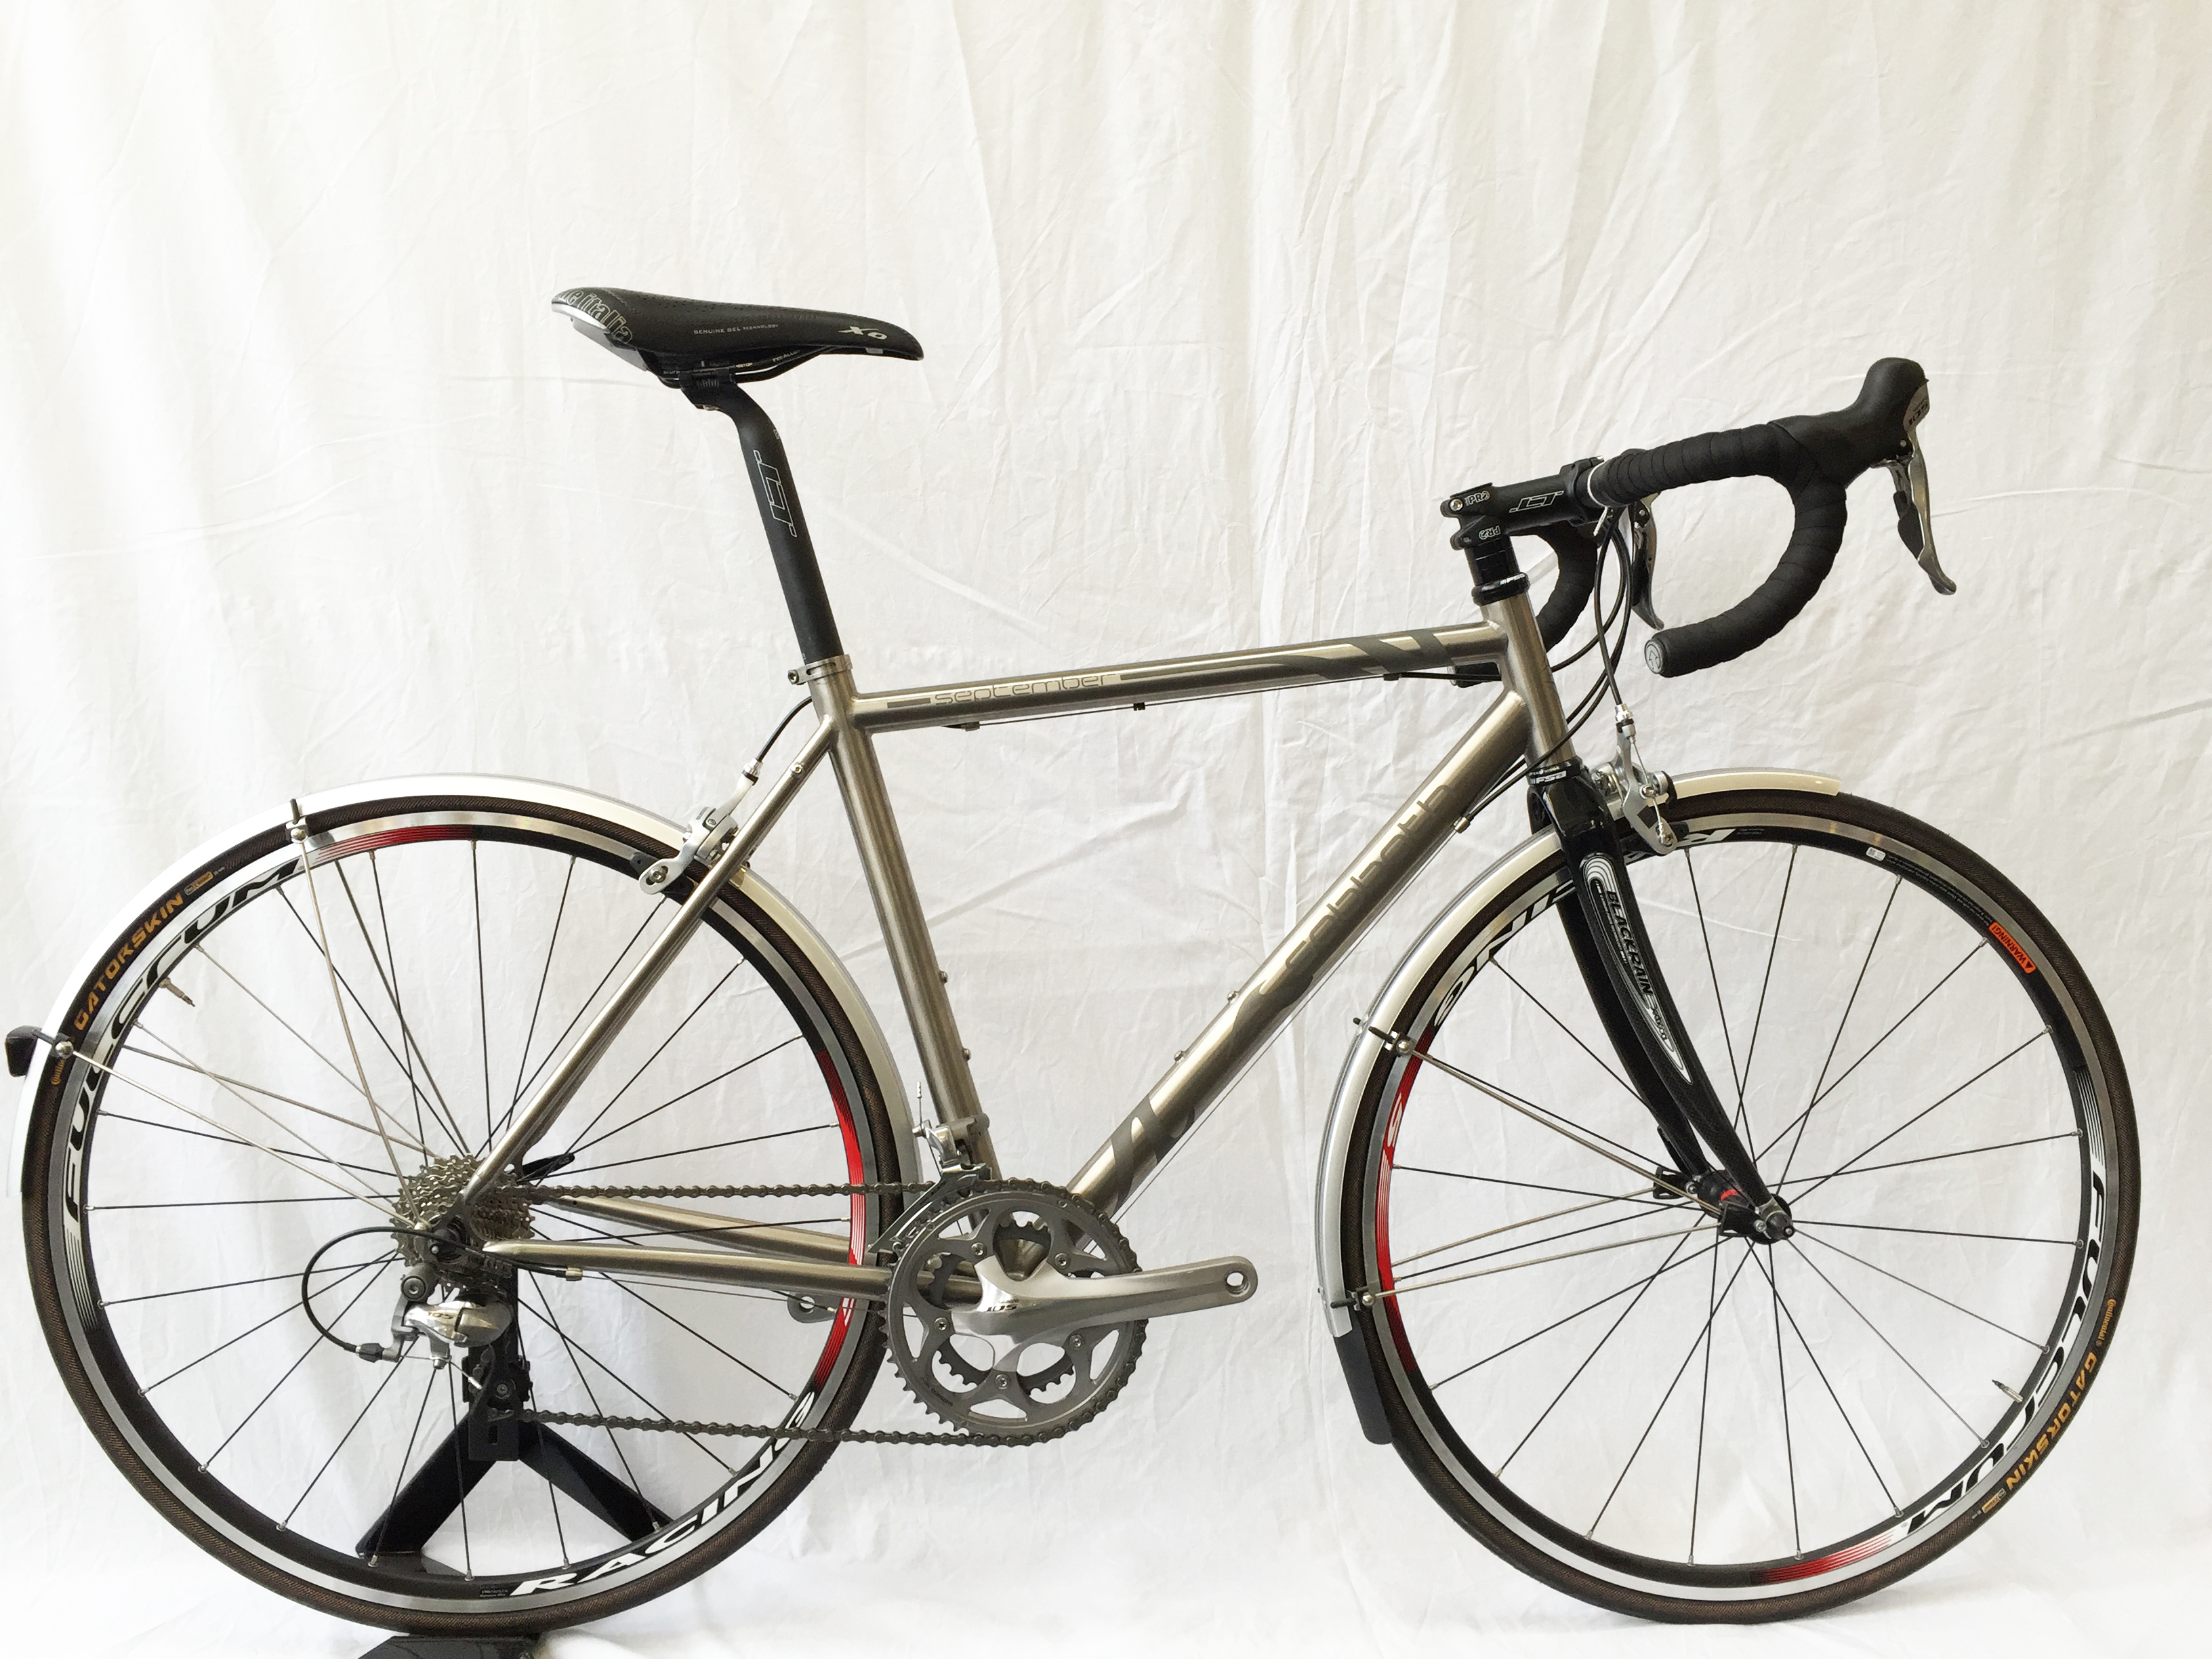 Sabbath September 105 Titanium Audax Road Bike 56cm - Ex Display ...